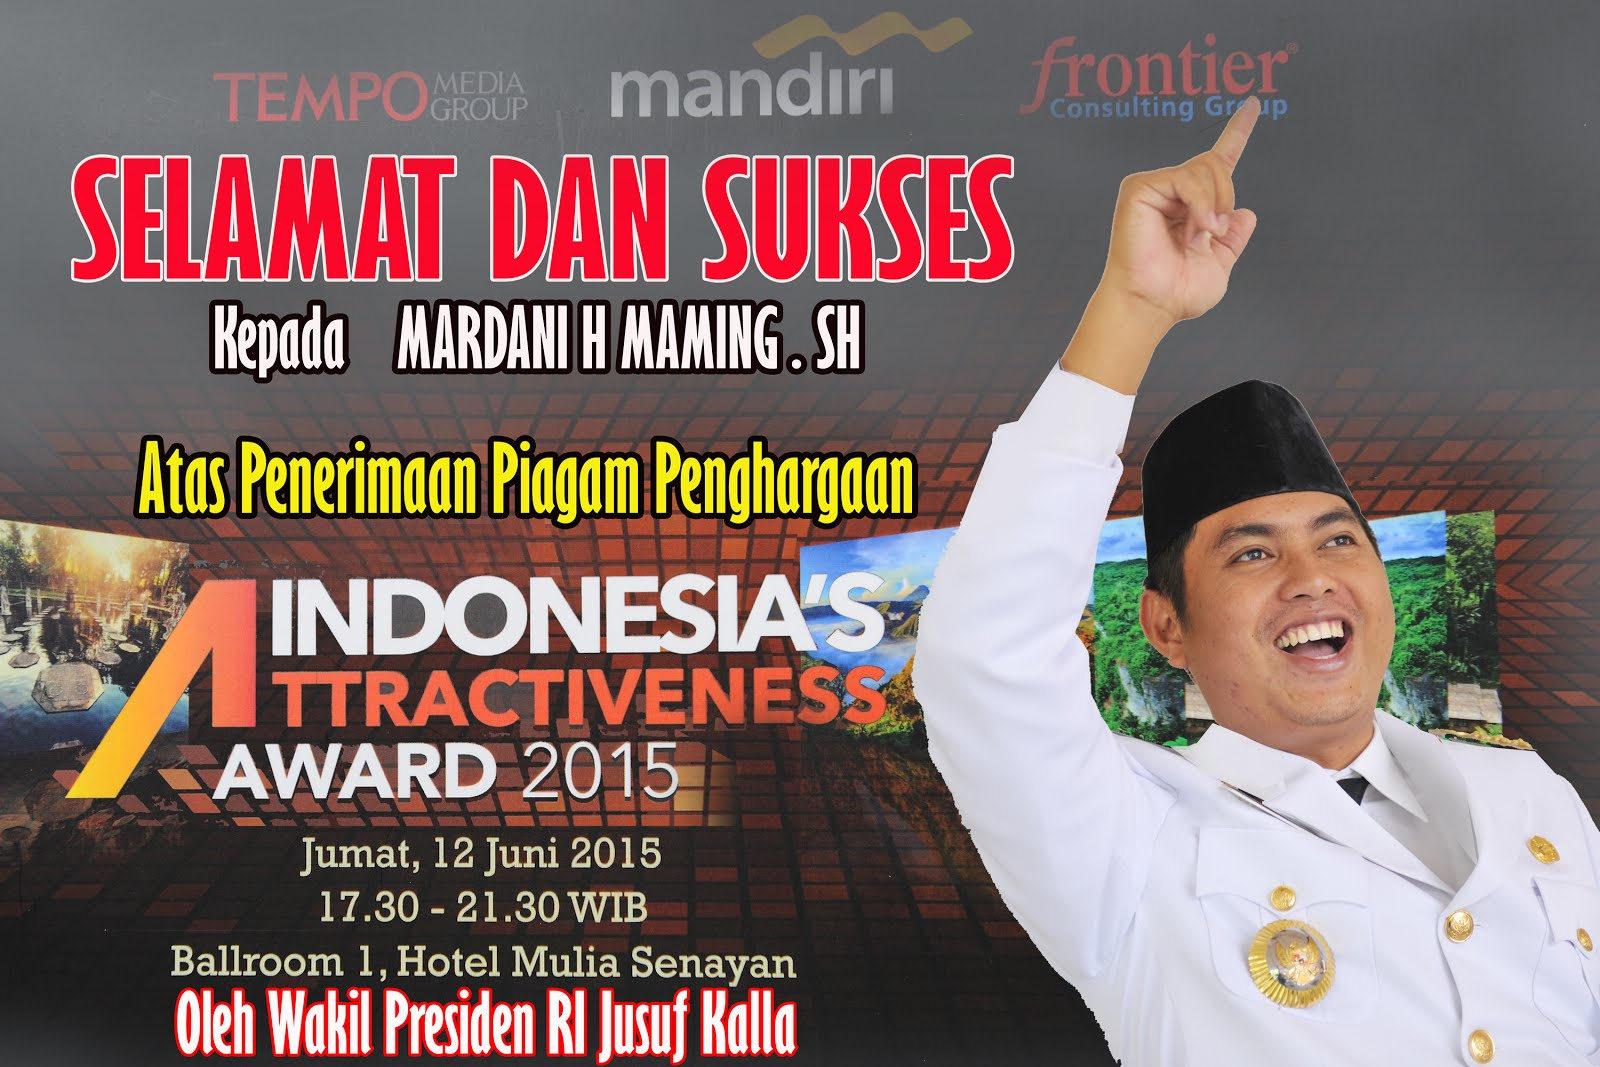 Indonesia Atractiveness Award 2015